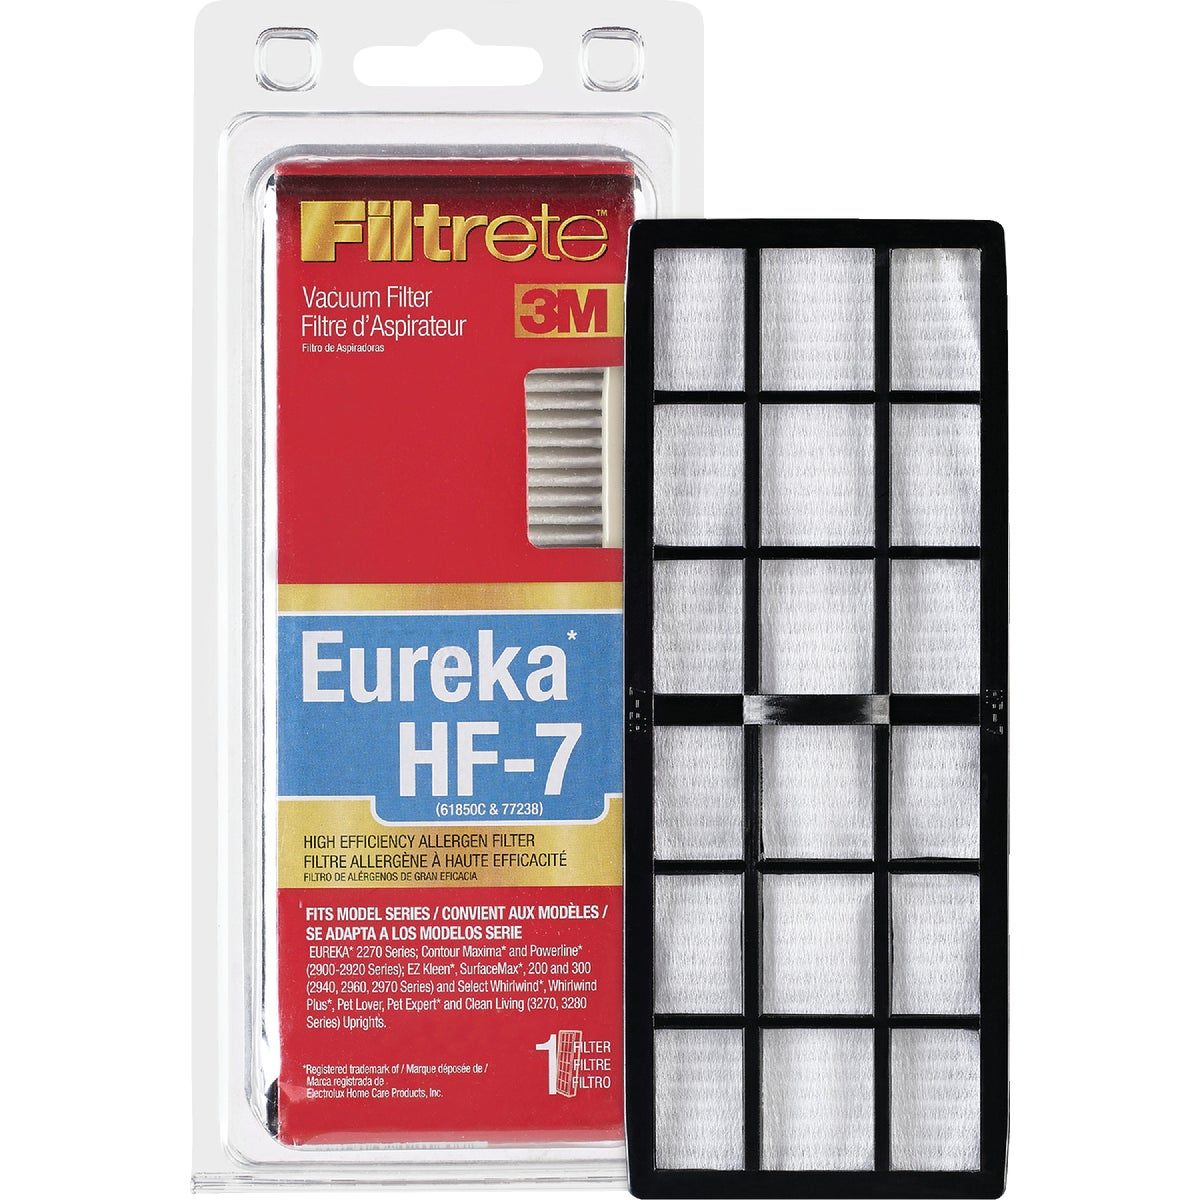 EUREKA HF7 HEPA FILTER - 67807A-4 by Electrolux Home Care